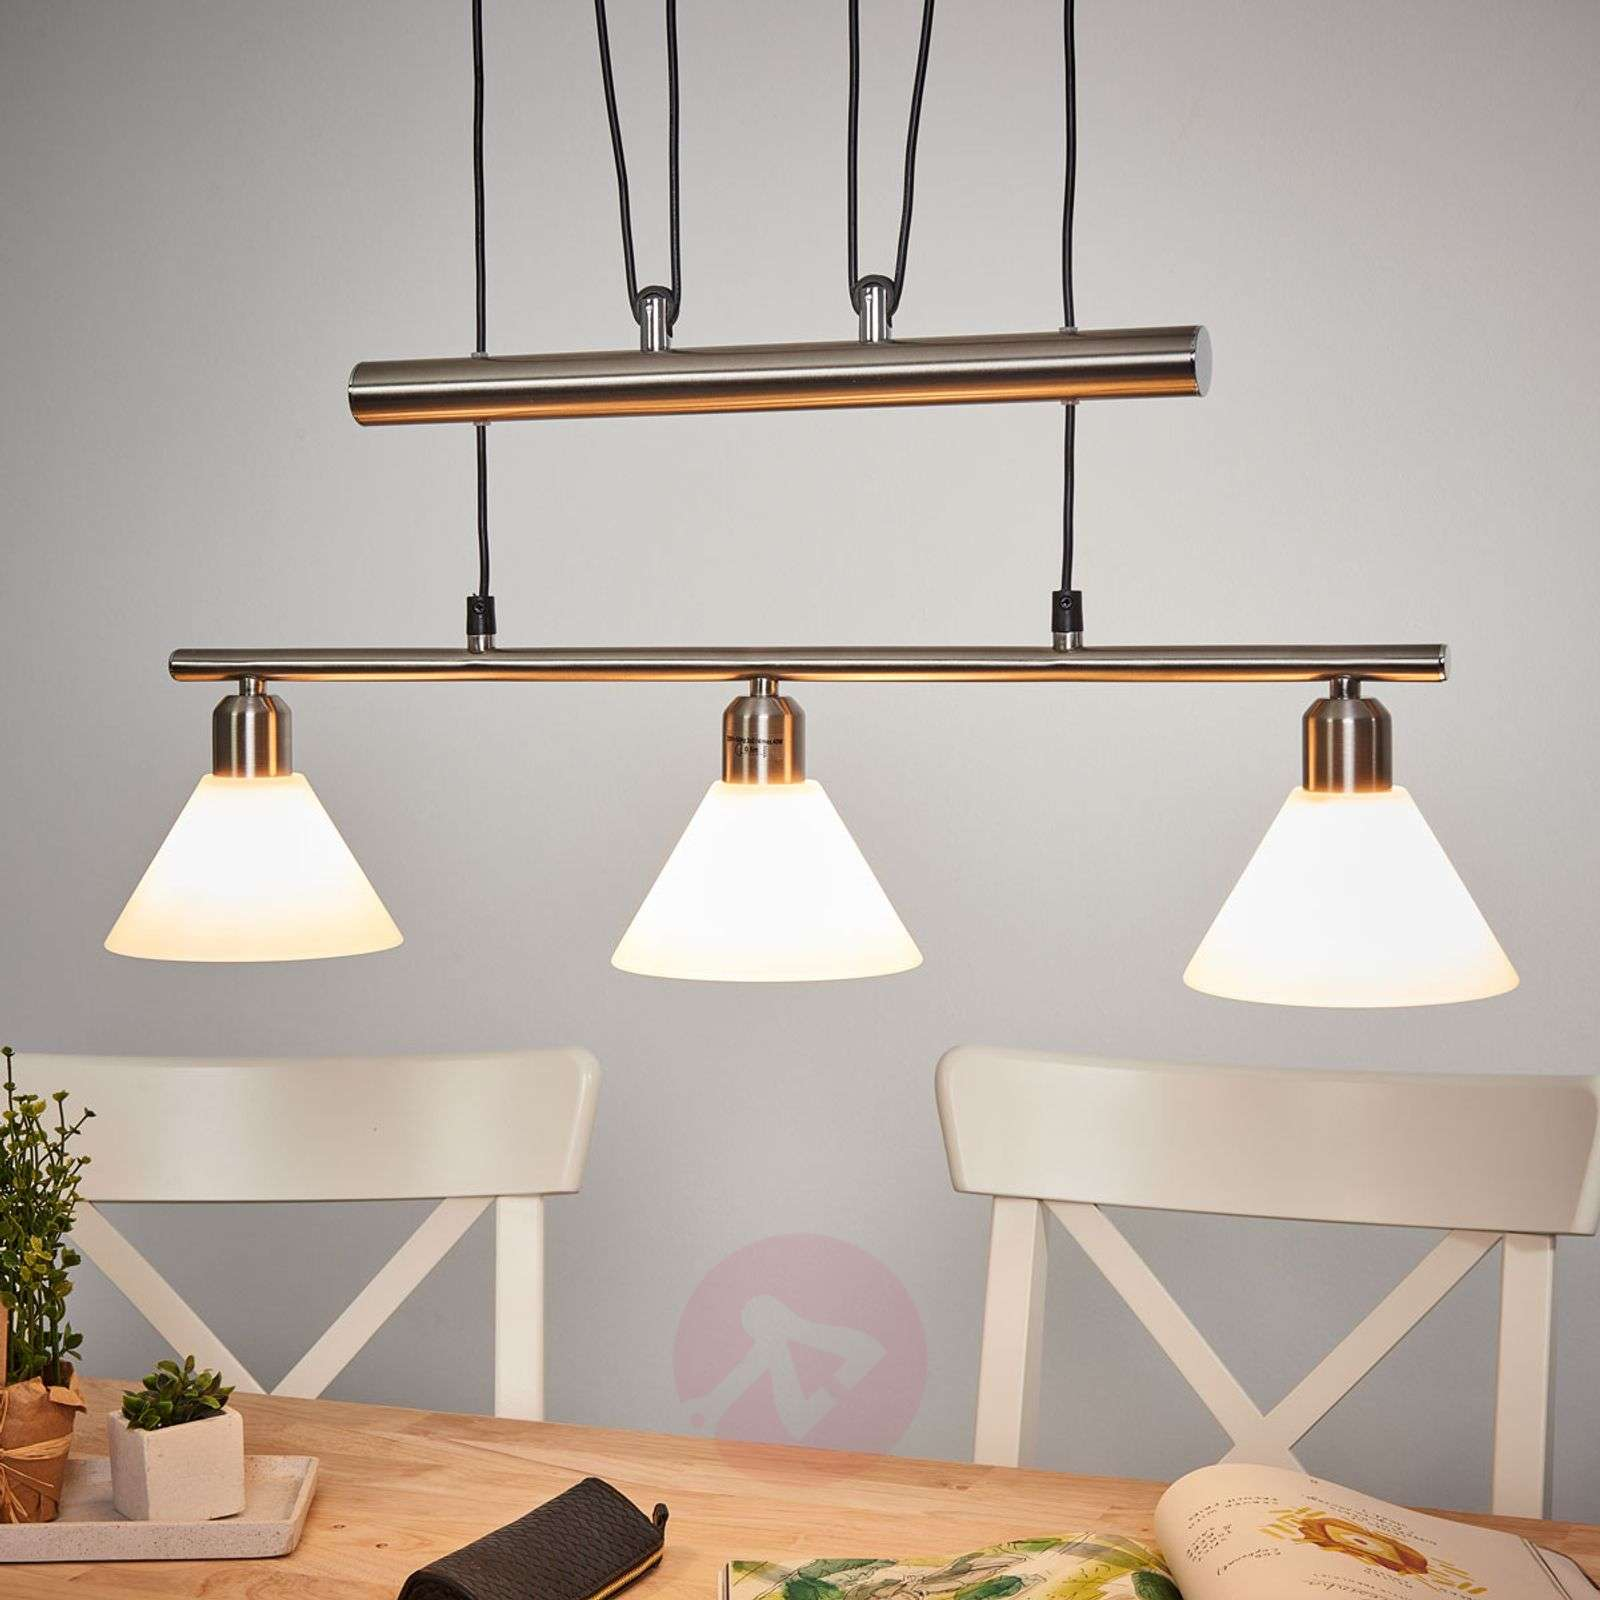 Height adjustable pendant light 3 bulb